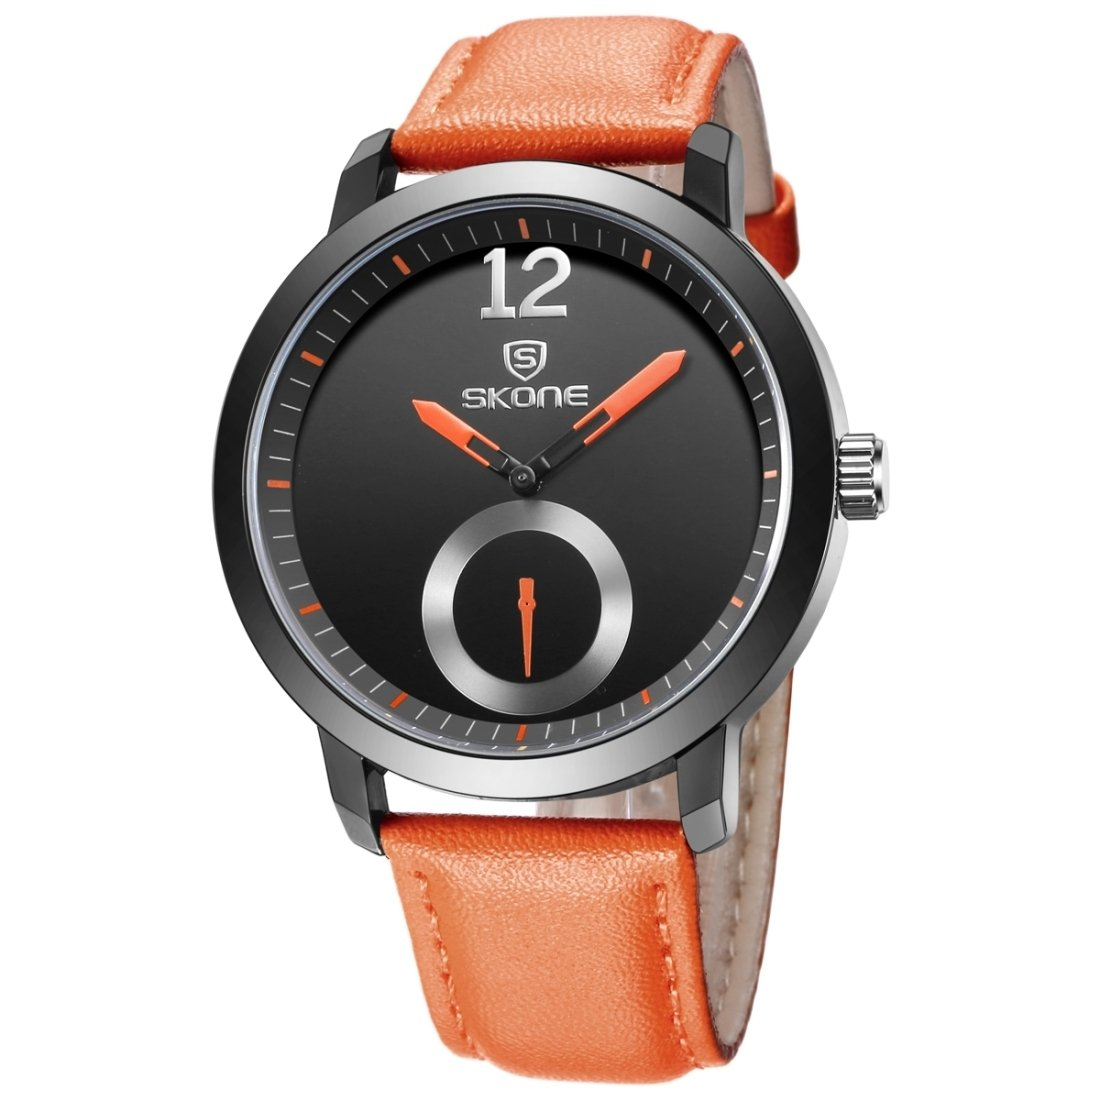 Dig dog bone 5015 Simple Round Dial One Decoration Dial Fashion Men Quartz Watch With PU Leather Band (Color : Orange)